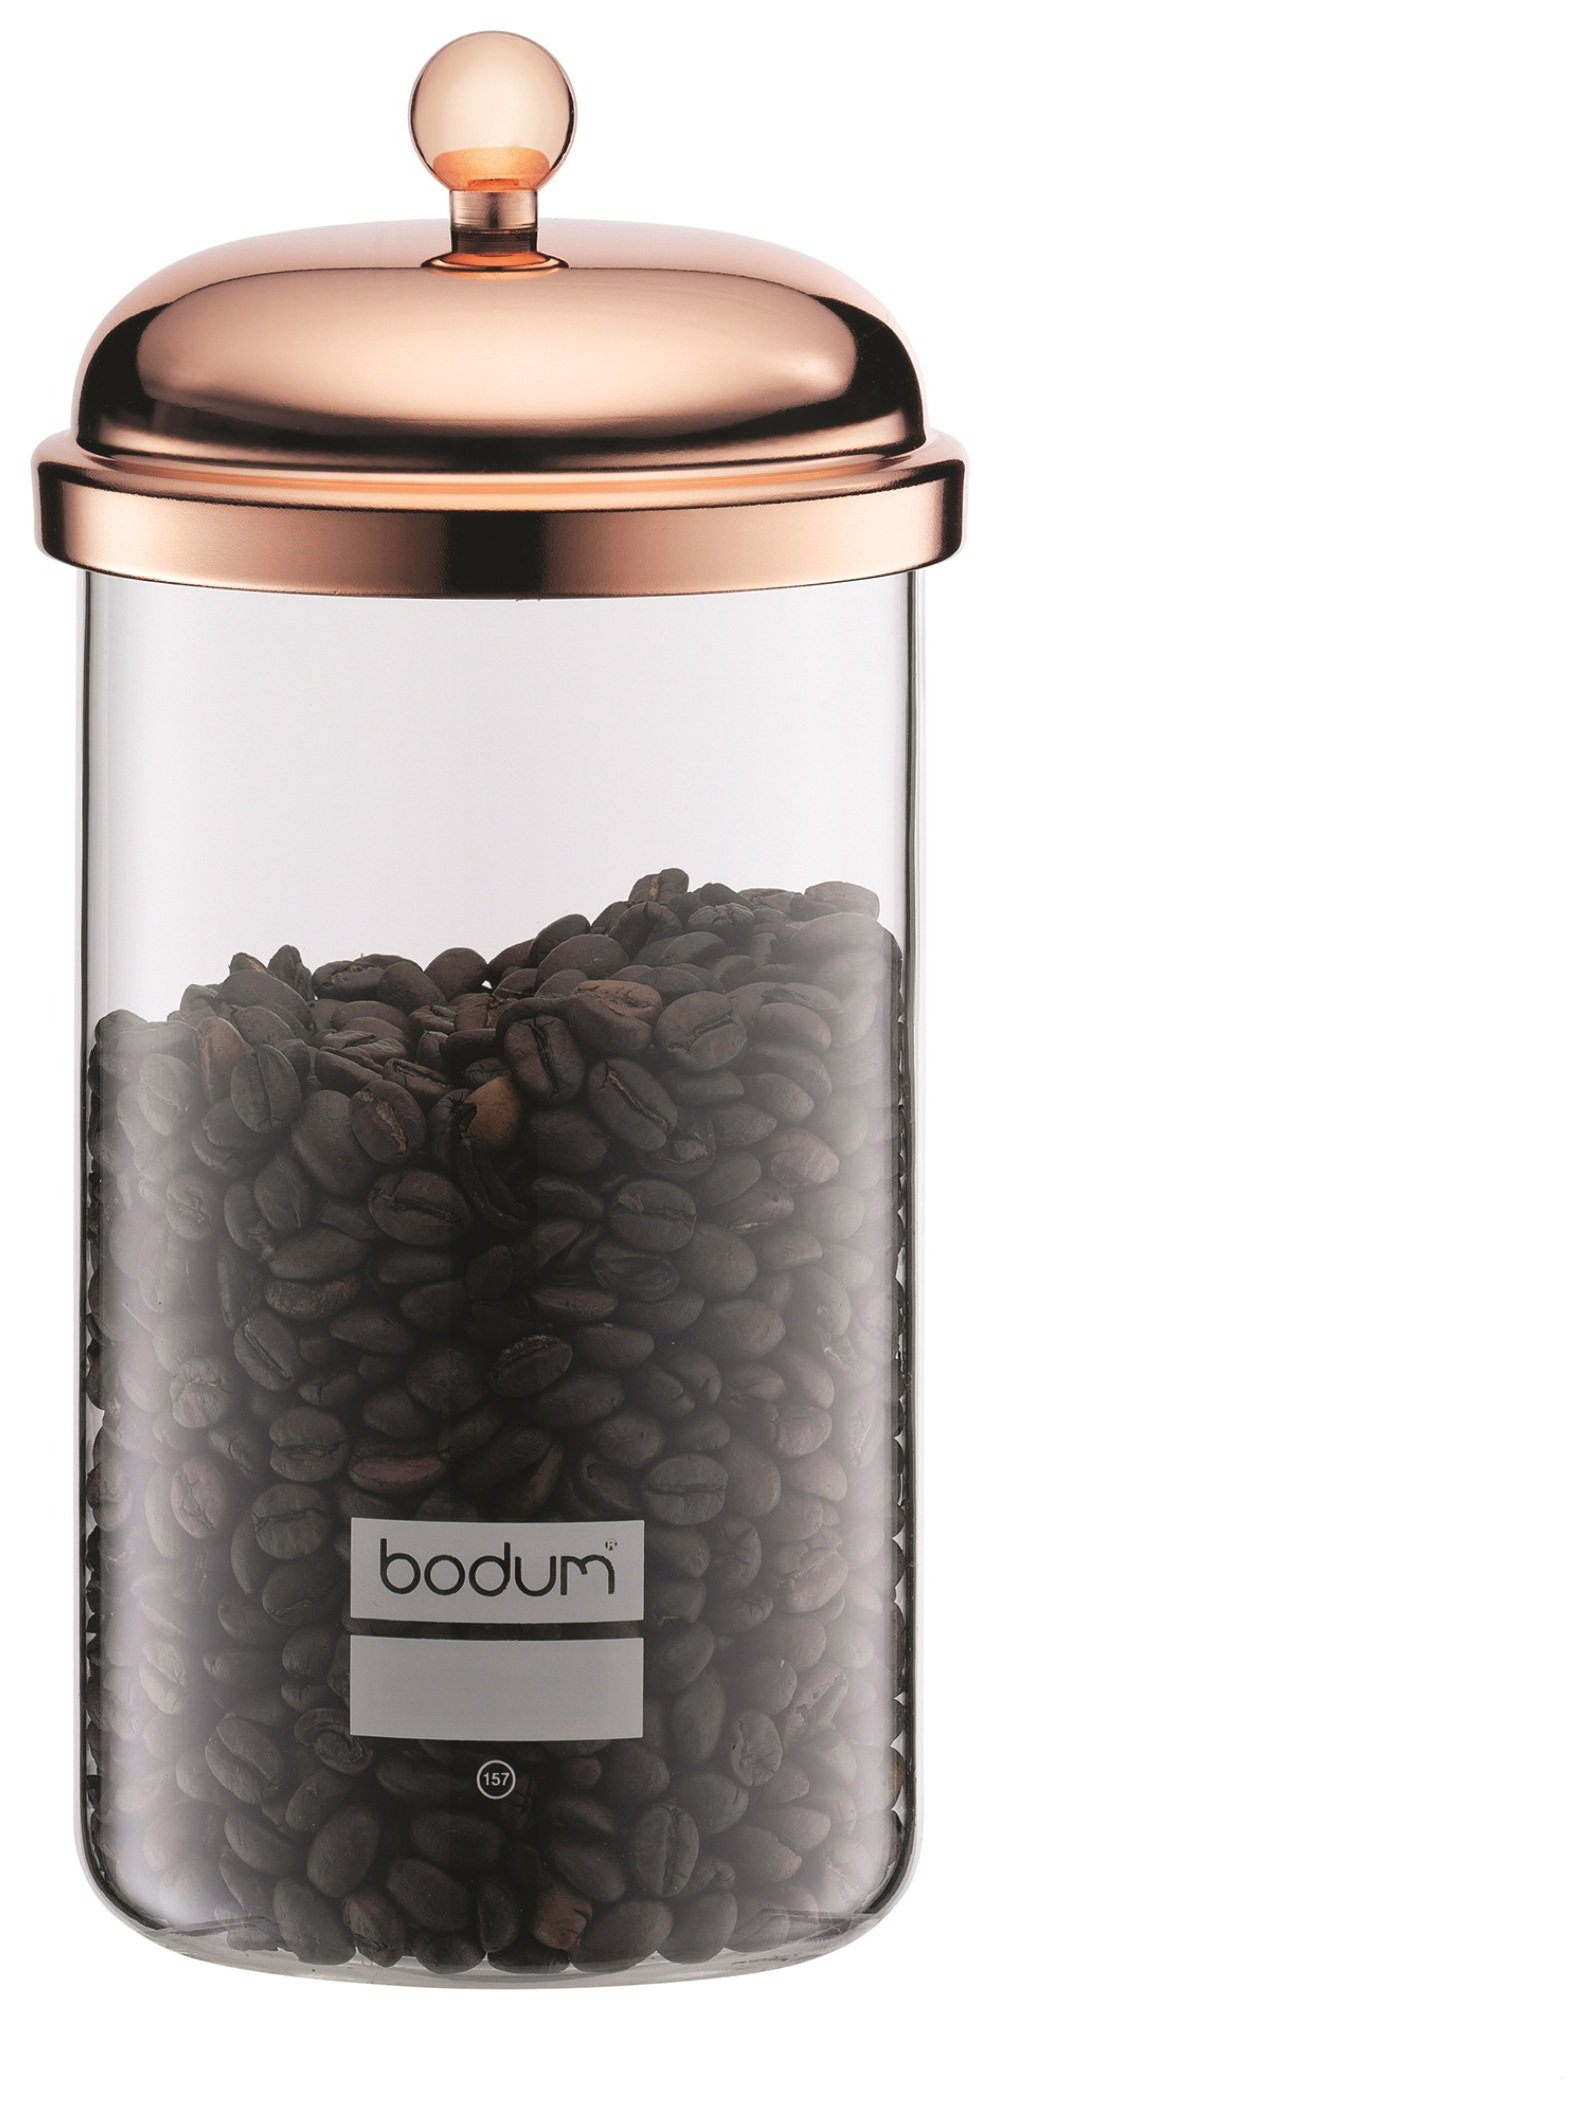 Image of Bodum Chambord Storage Jar - Copper